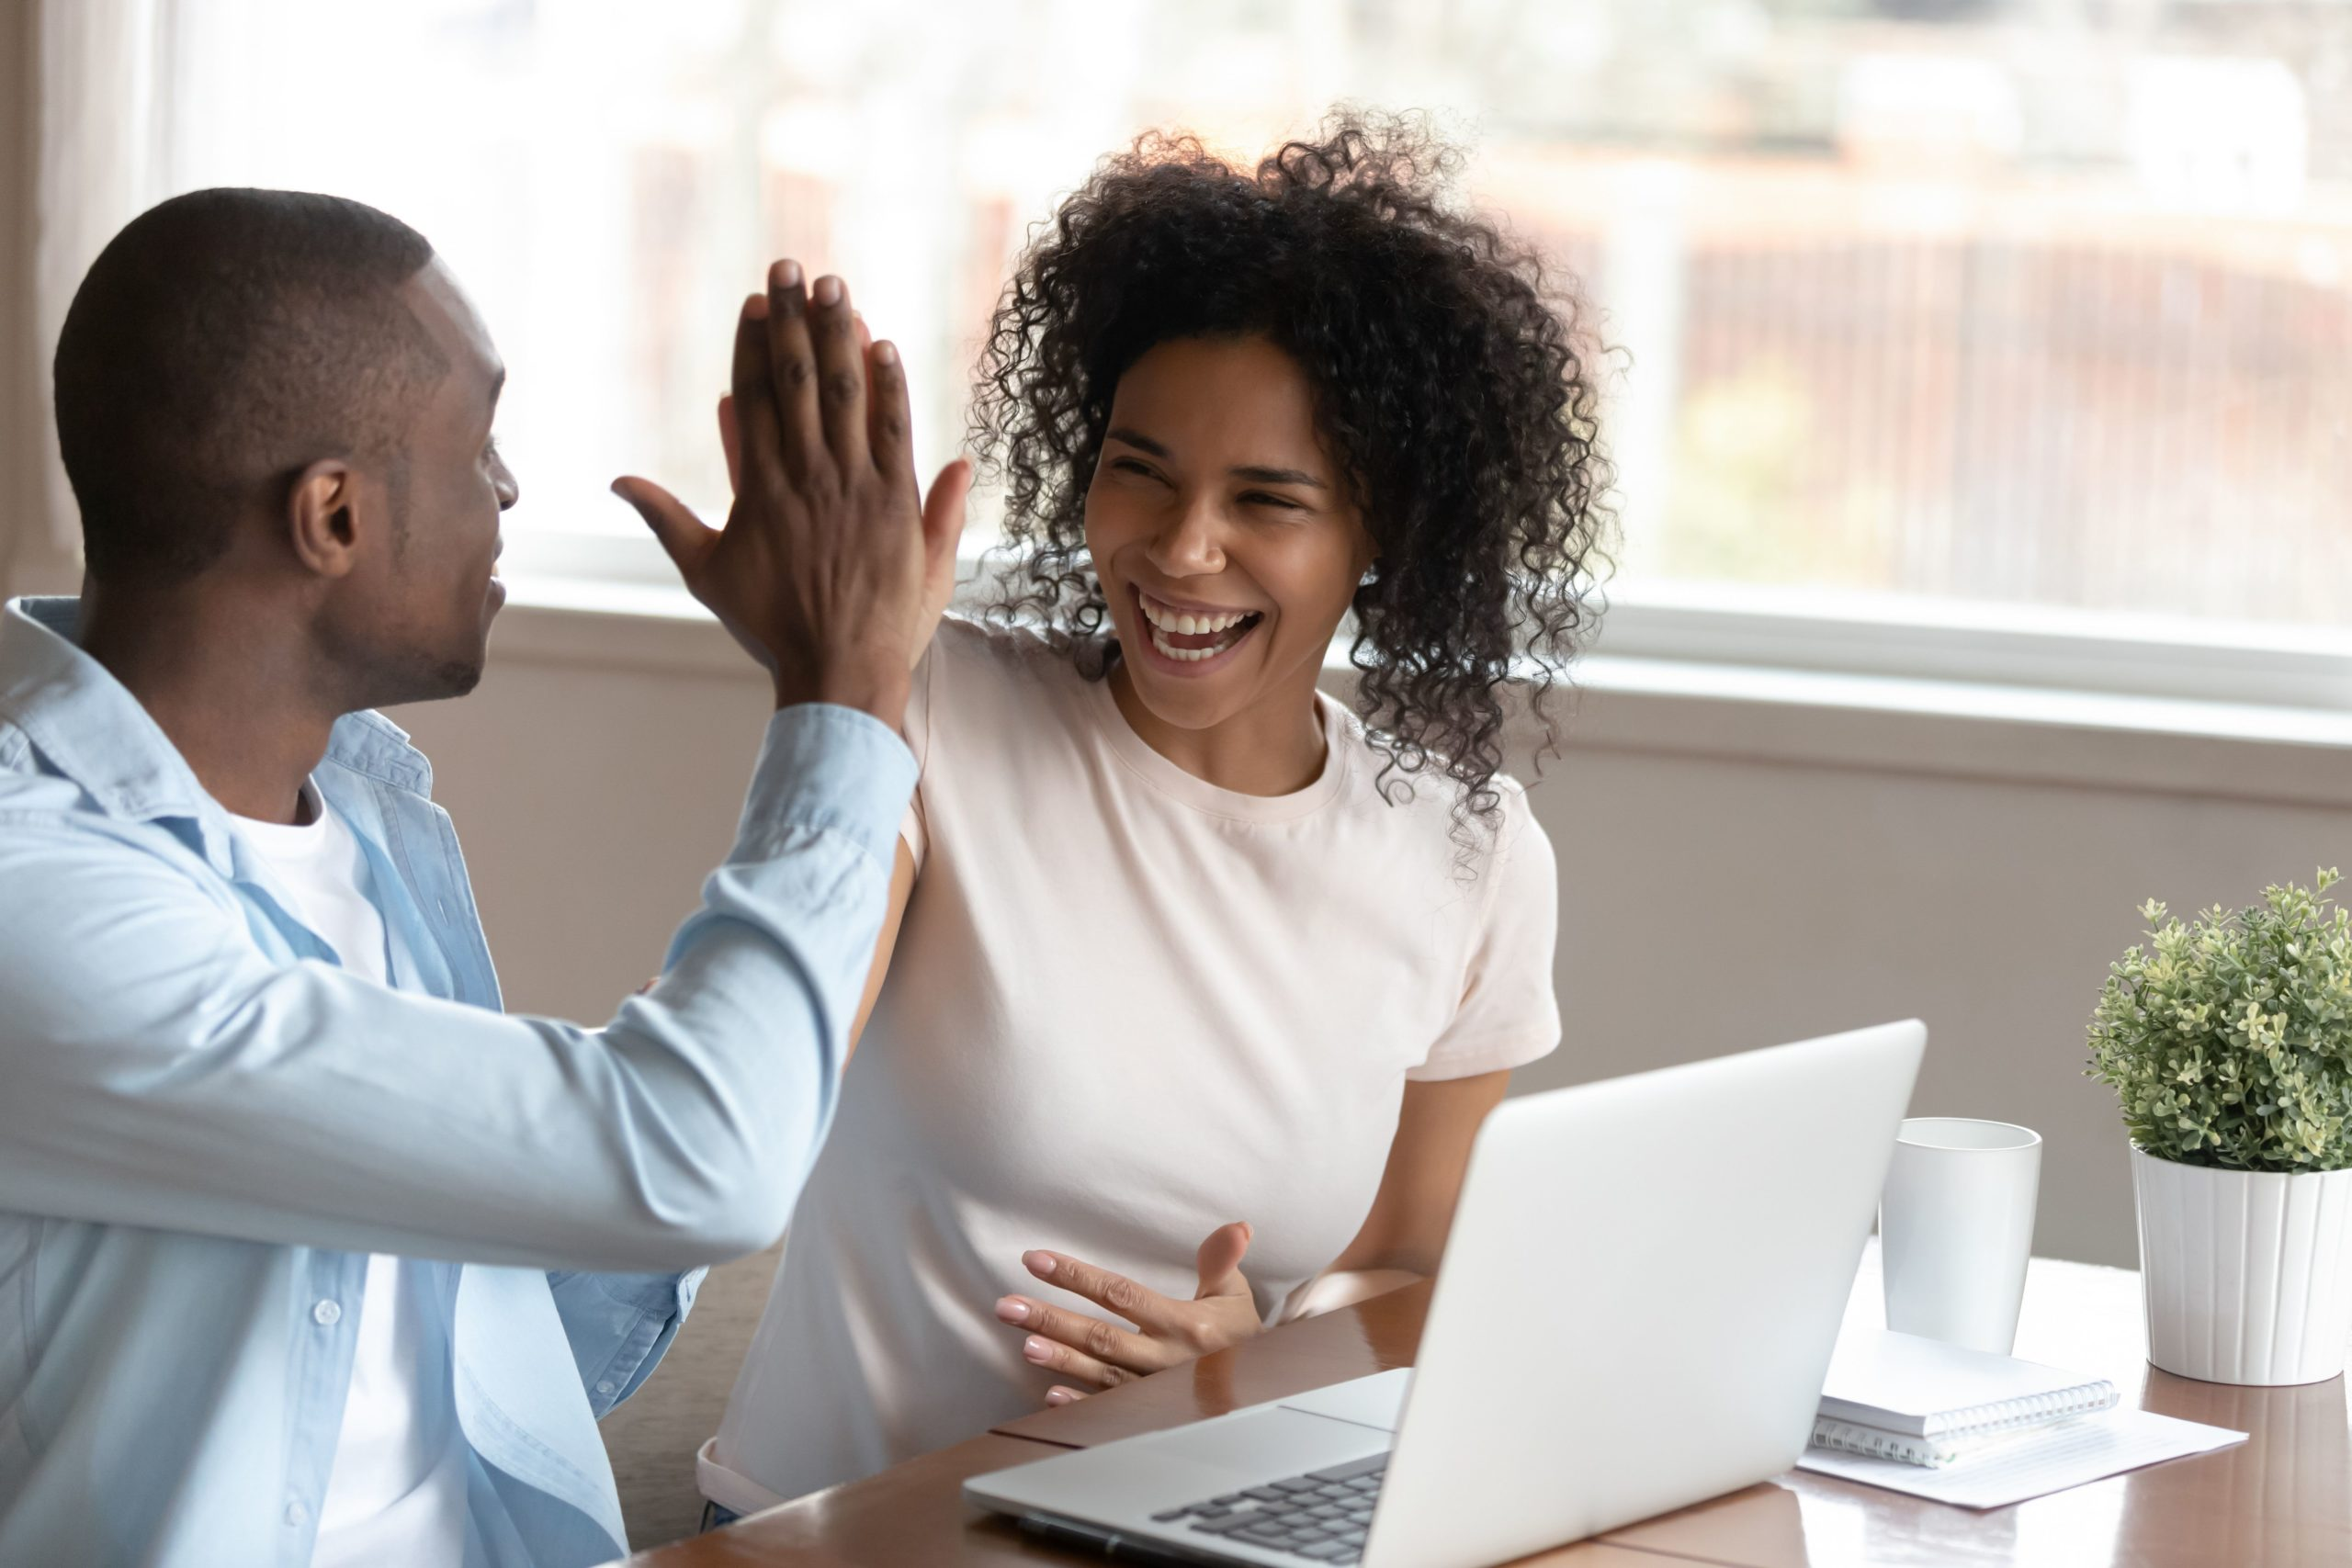 Two people high fiving at the desk